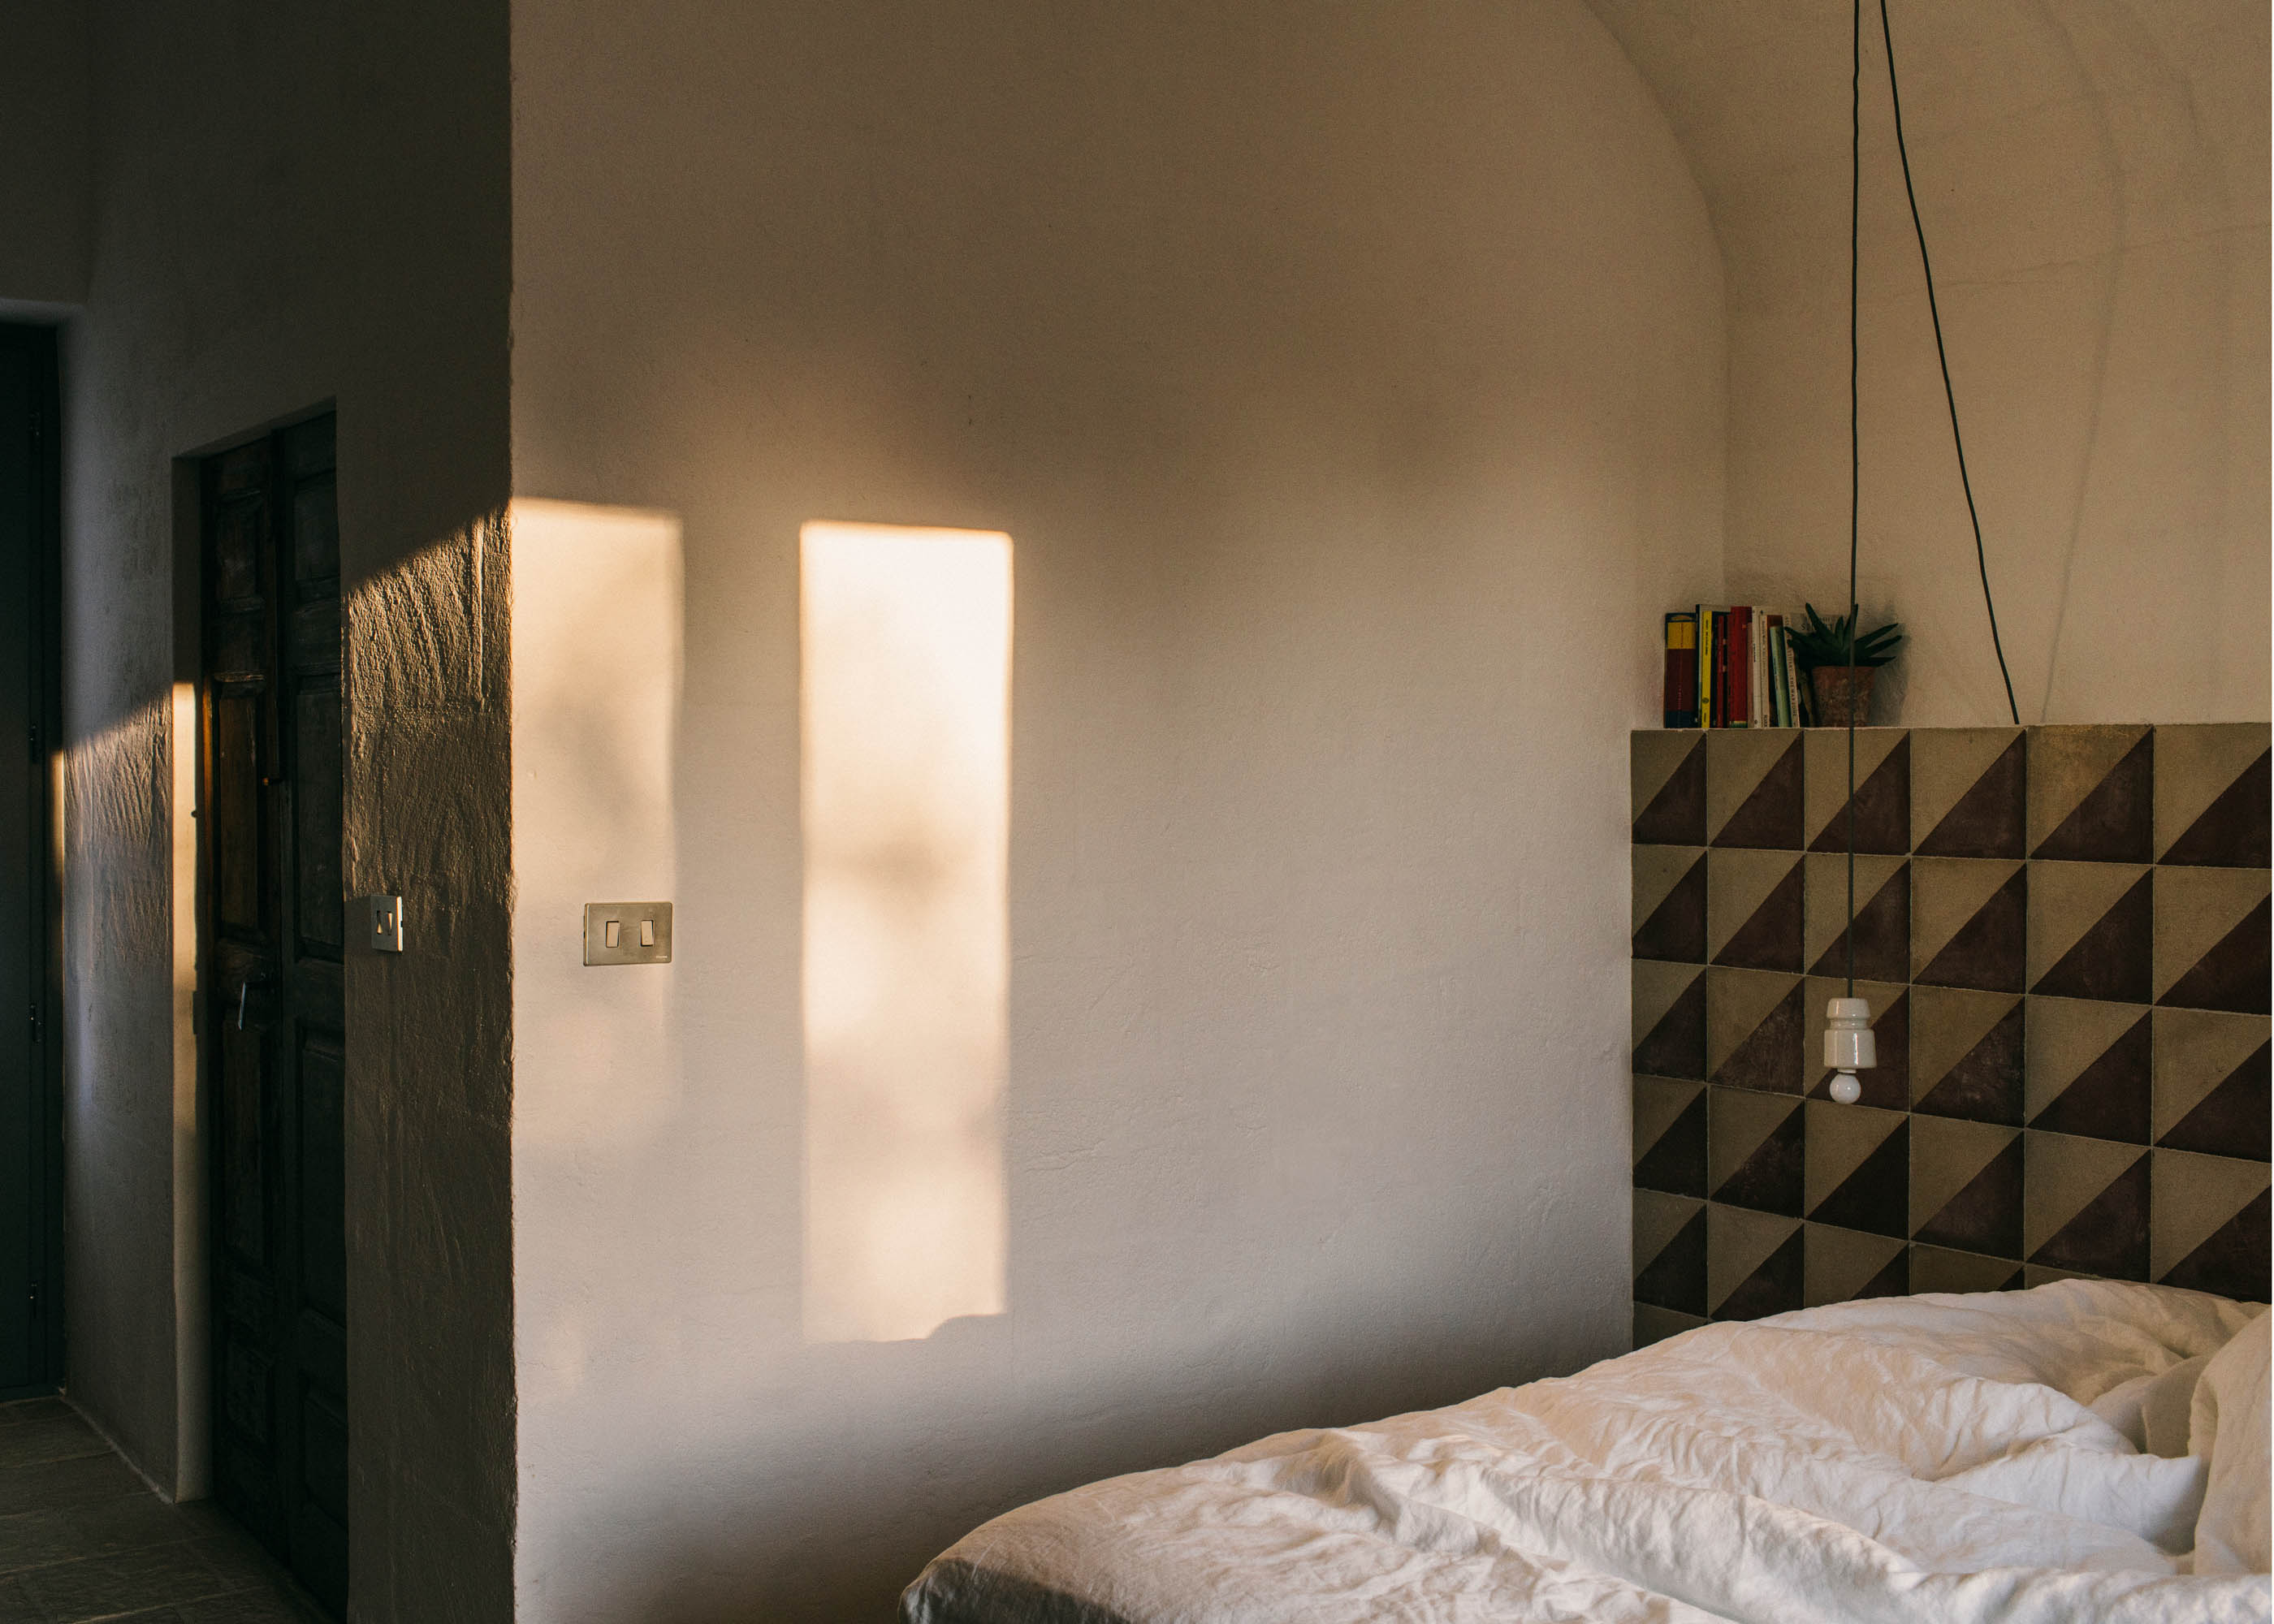 #italy #puglia #masseria #morosseta #hotels #interiors #bedroom